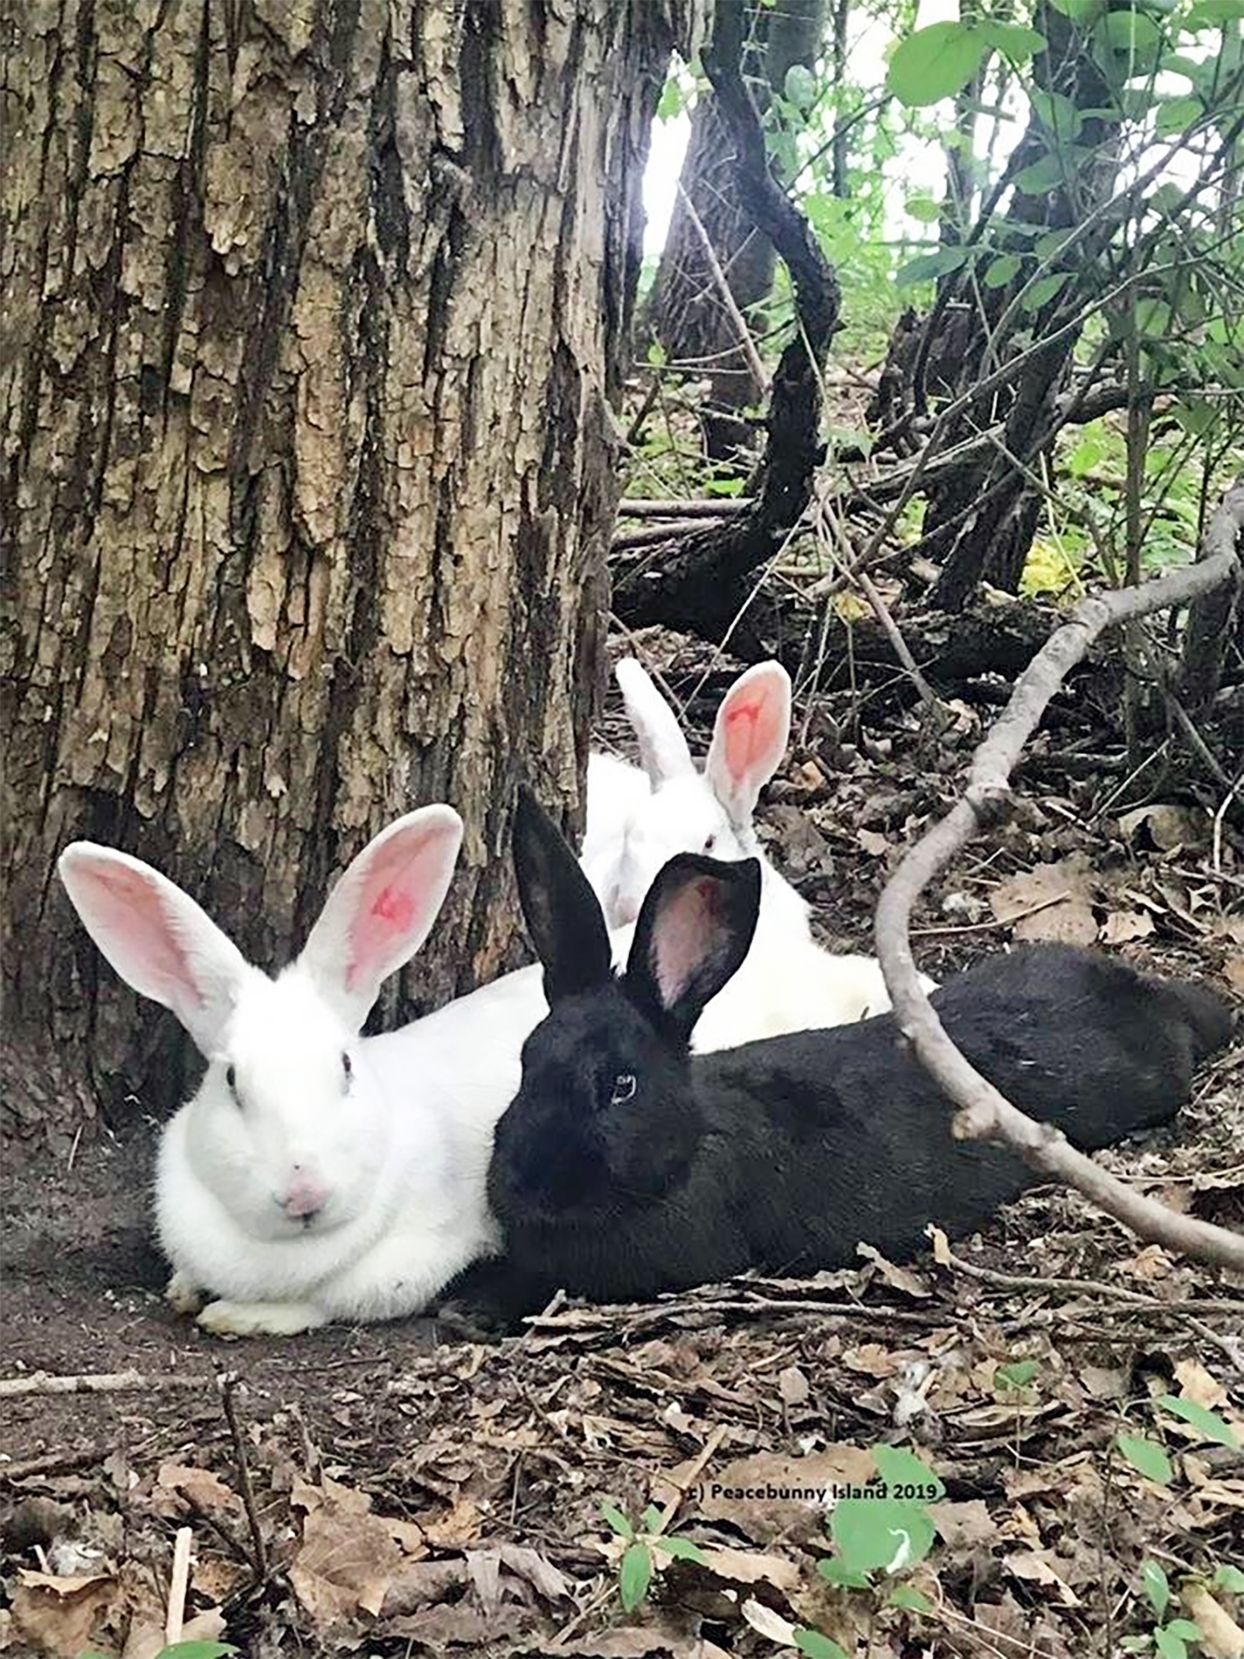 Three bunnies laying in the woods near a large tree